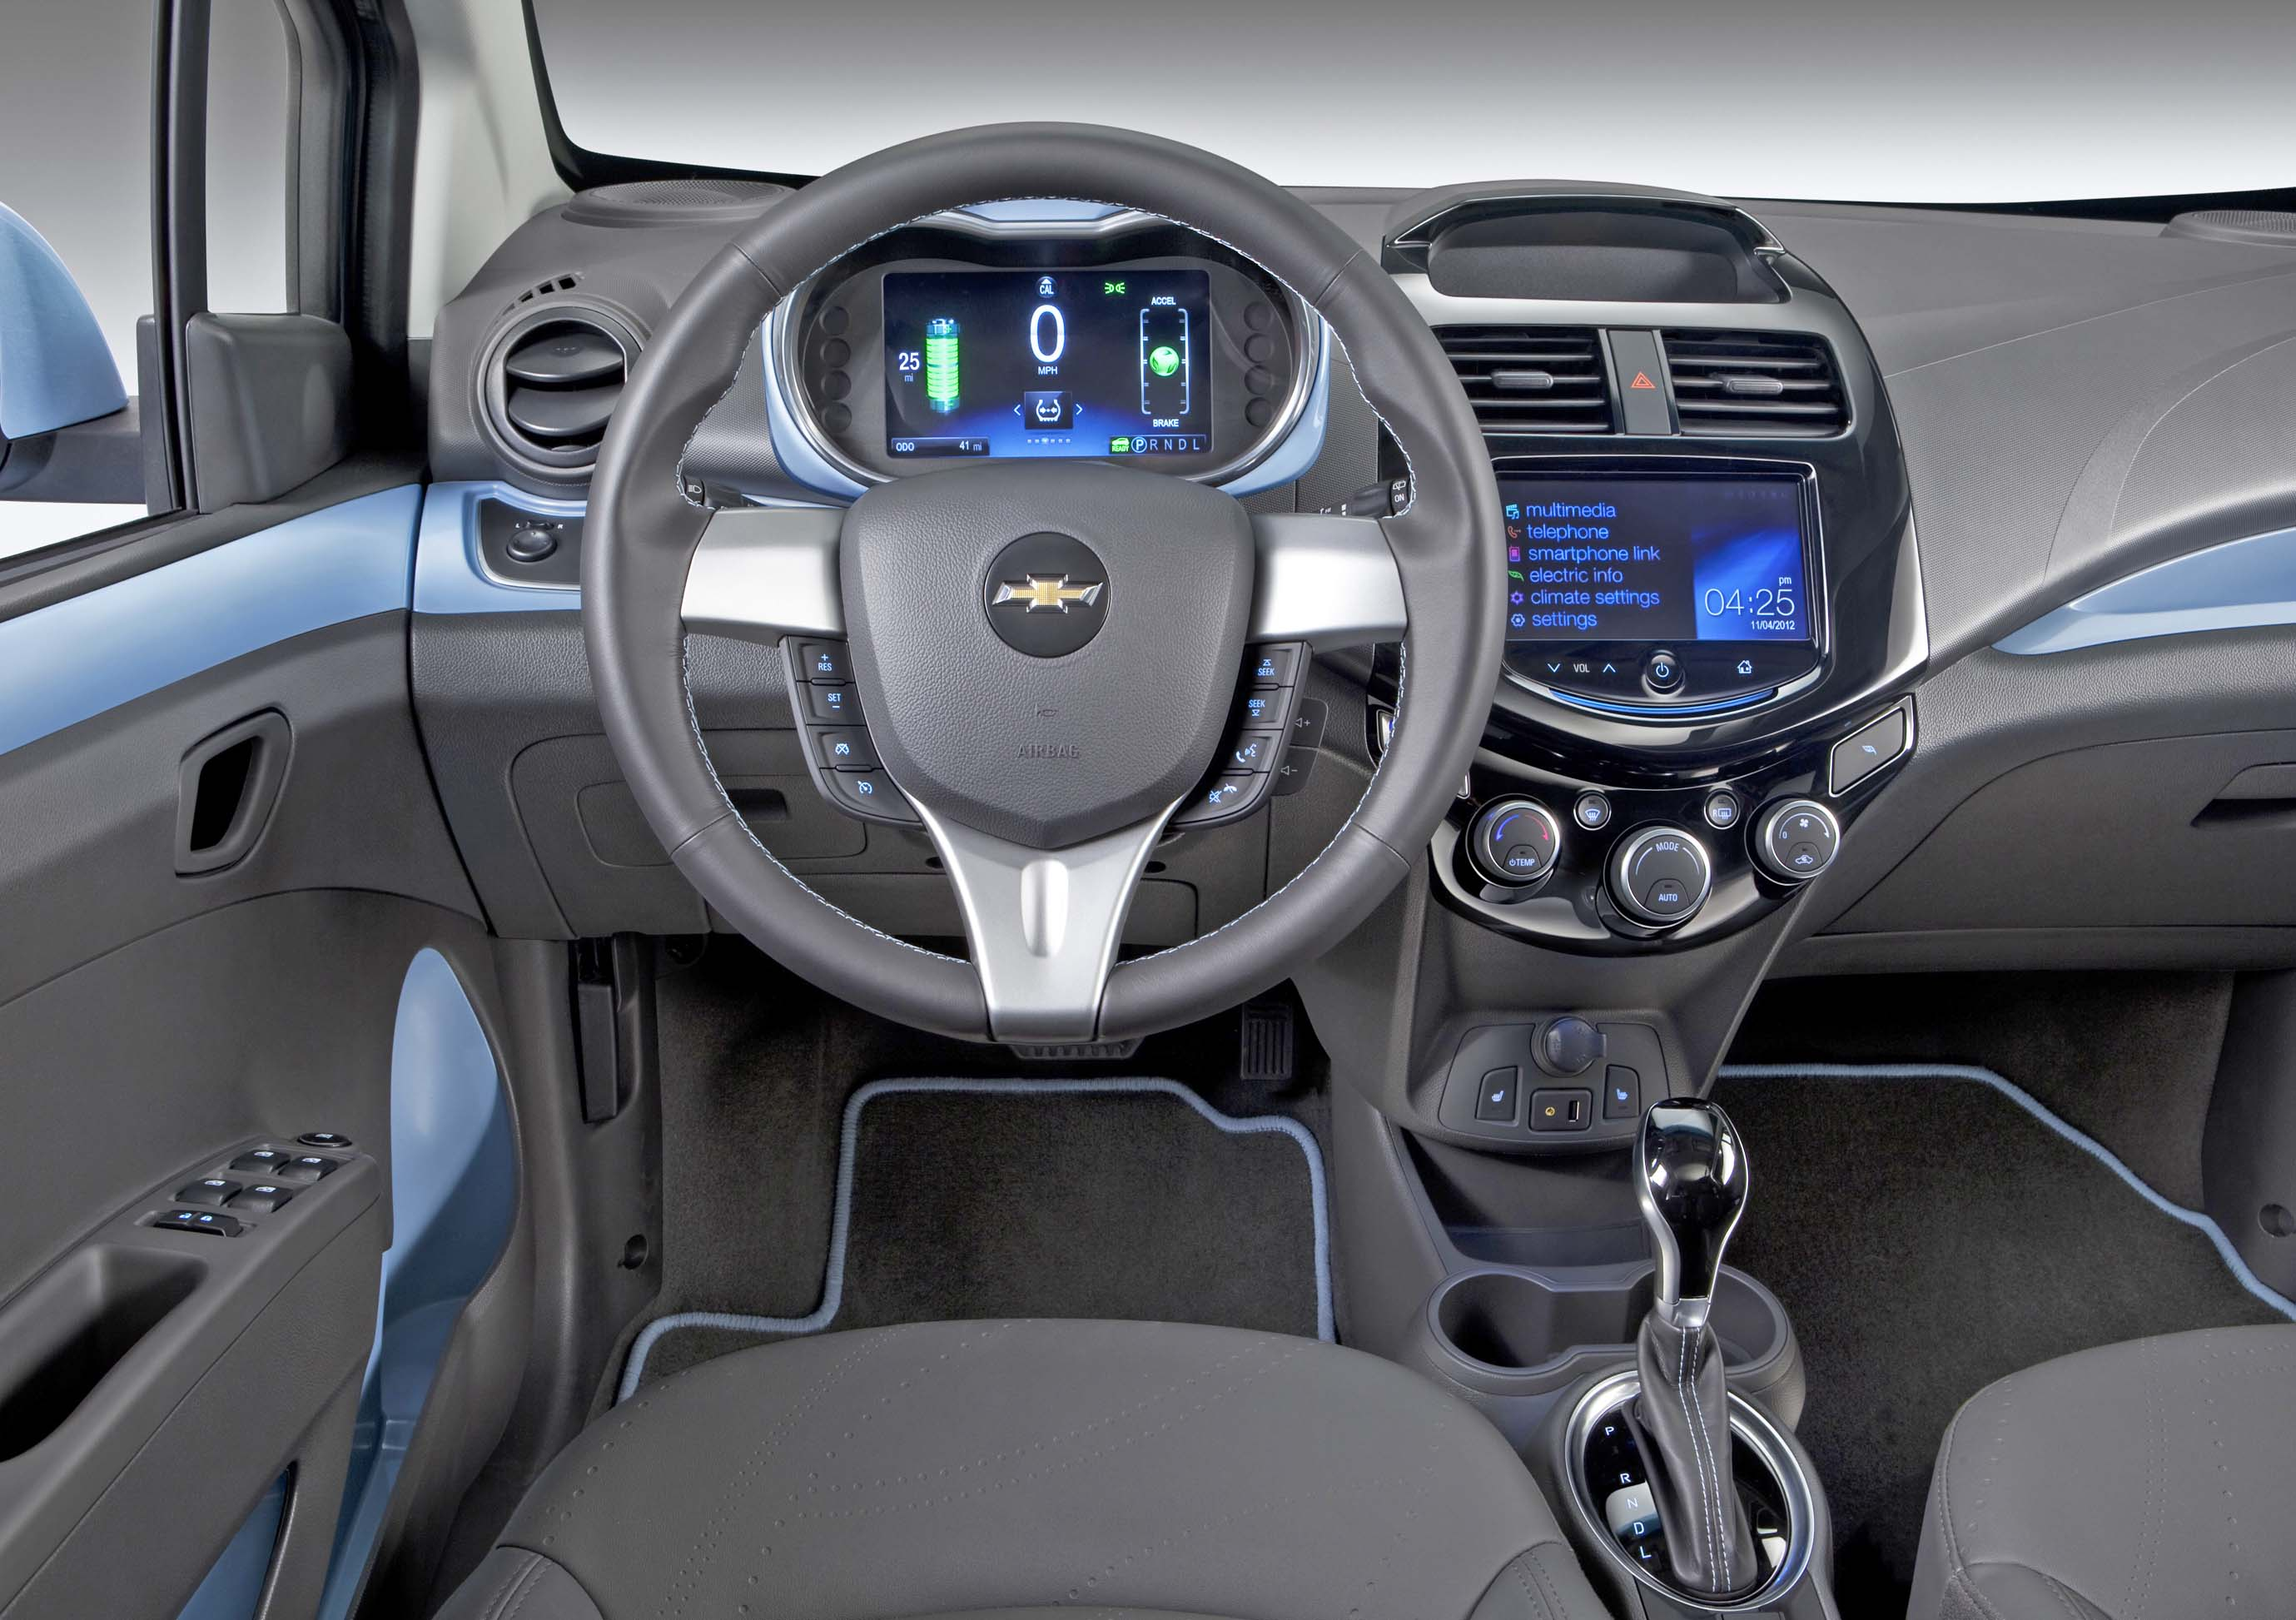 2014 chevrolet spark ev test drive our auto expert. Black Bedroom Furniture Sets. Home Design Ideas